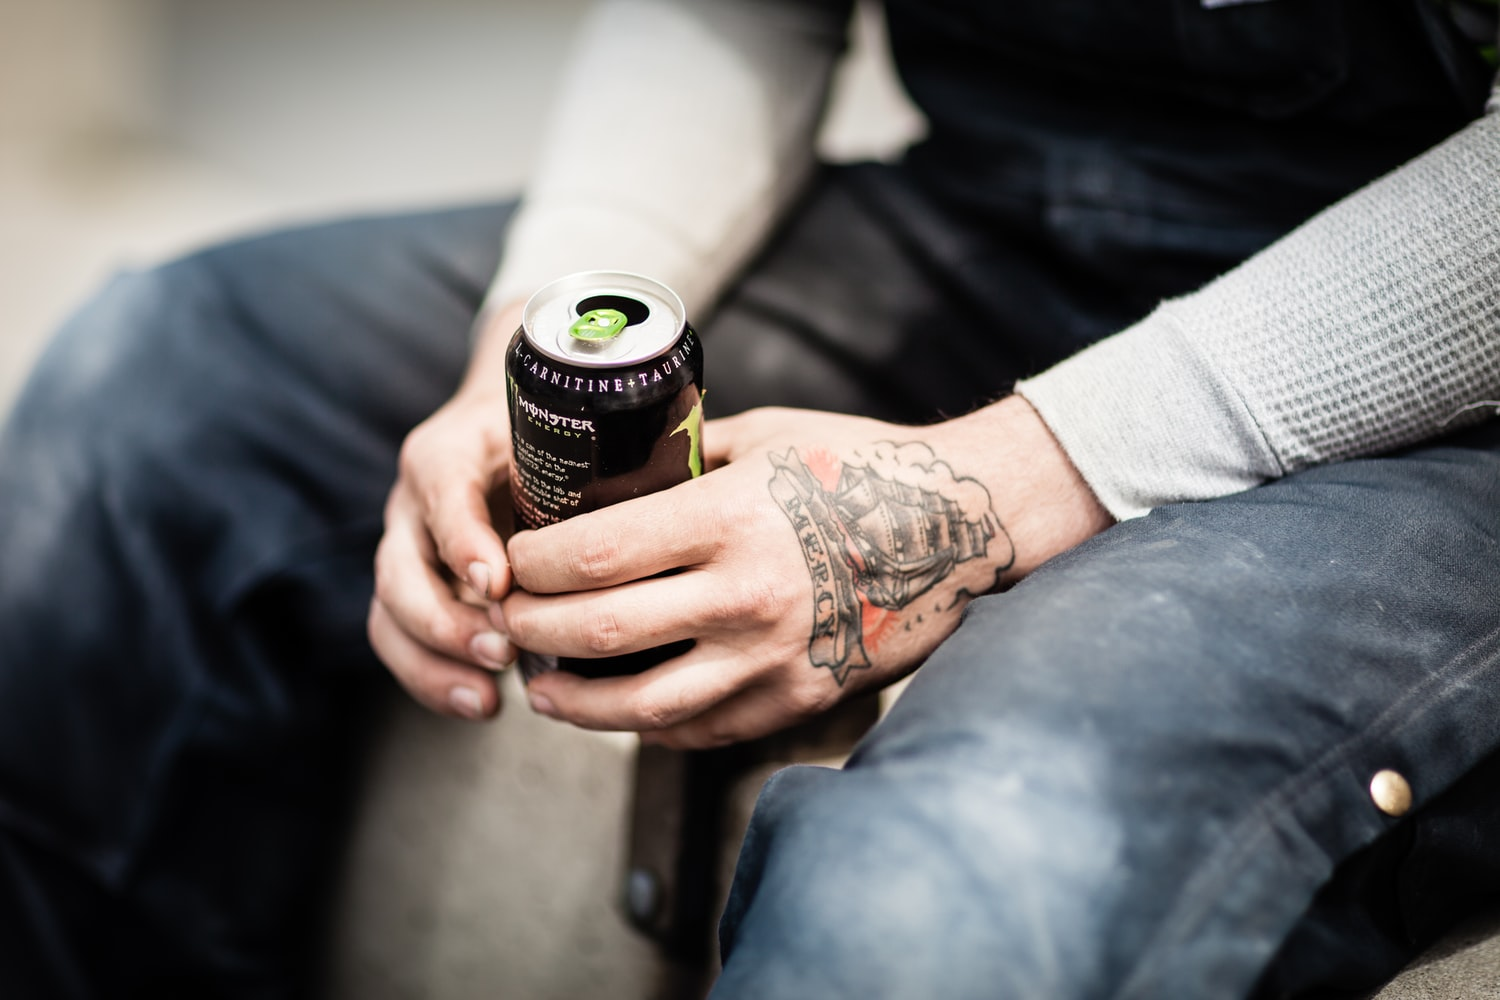 sitting tattooed person holding a can of energy drink